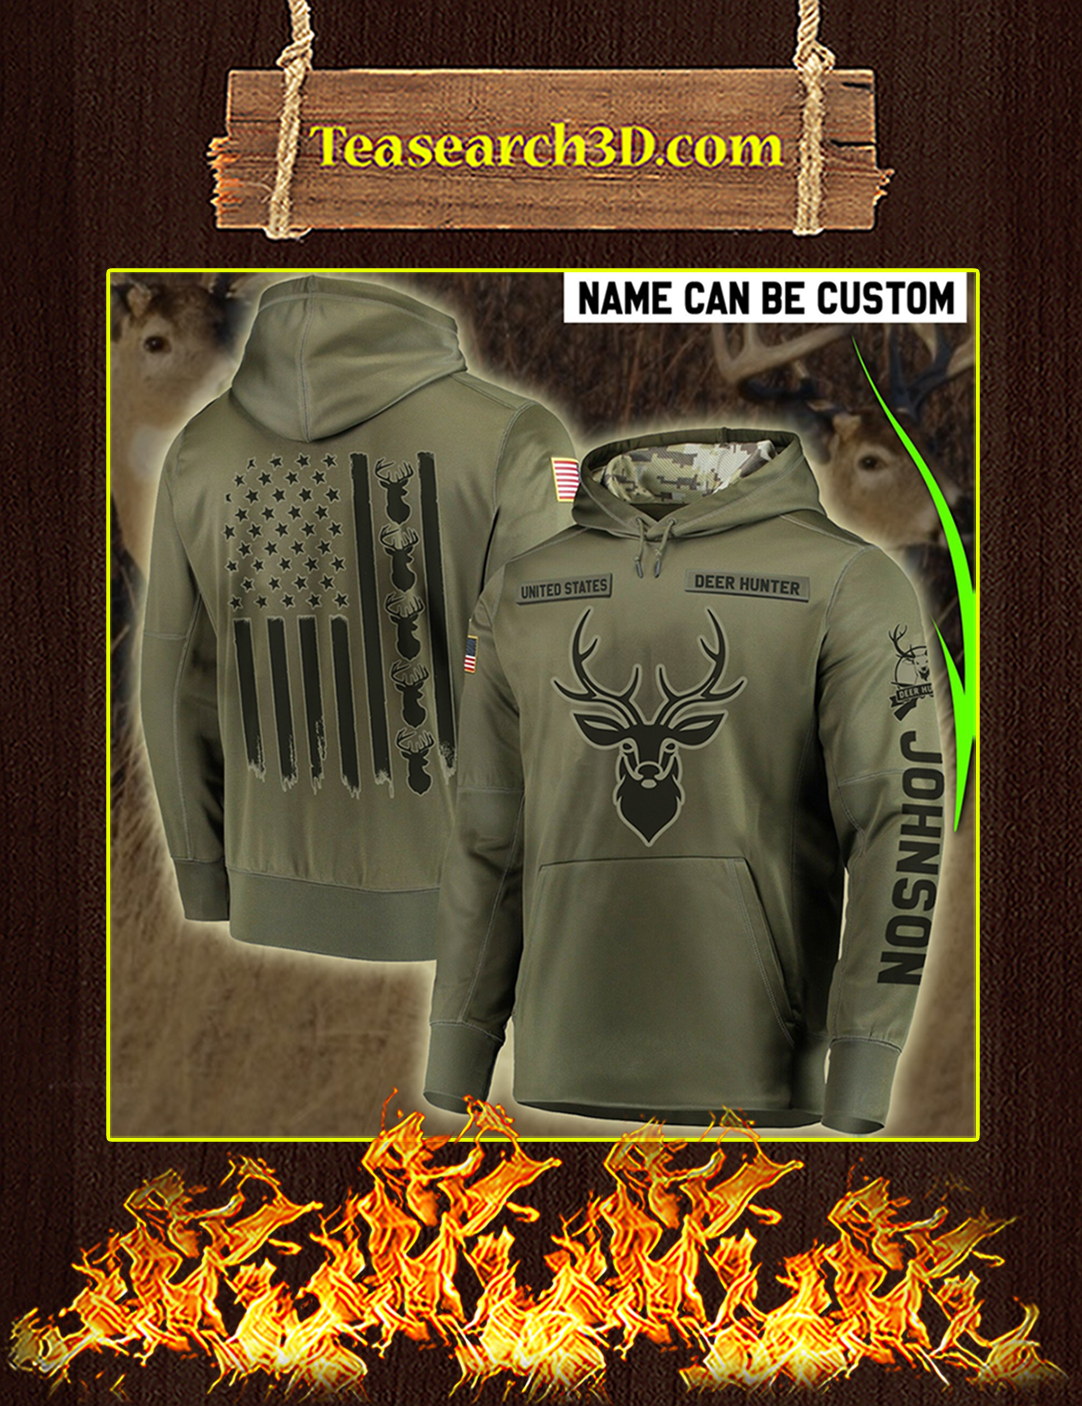 Personalized Custom Name Deer Hunter All Over Printed 3D Hoodie Size L